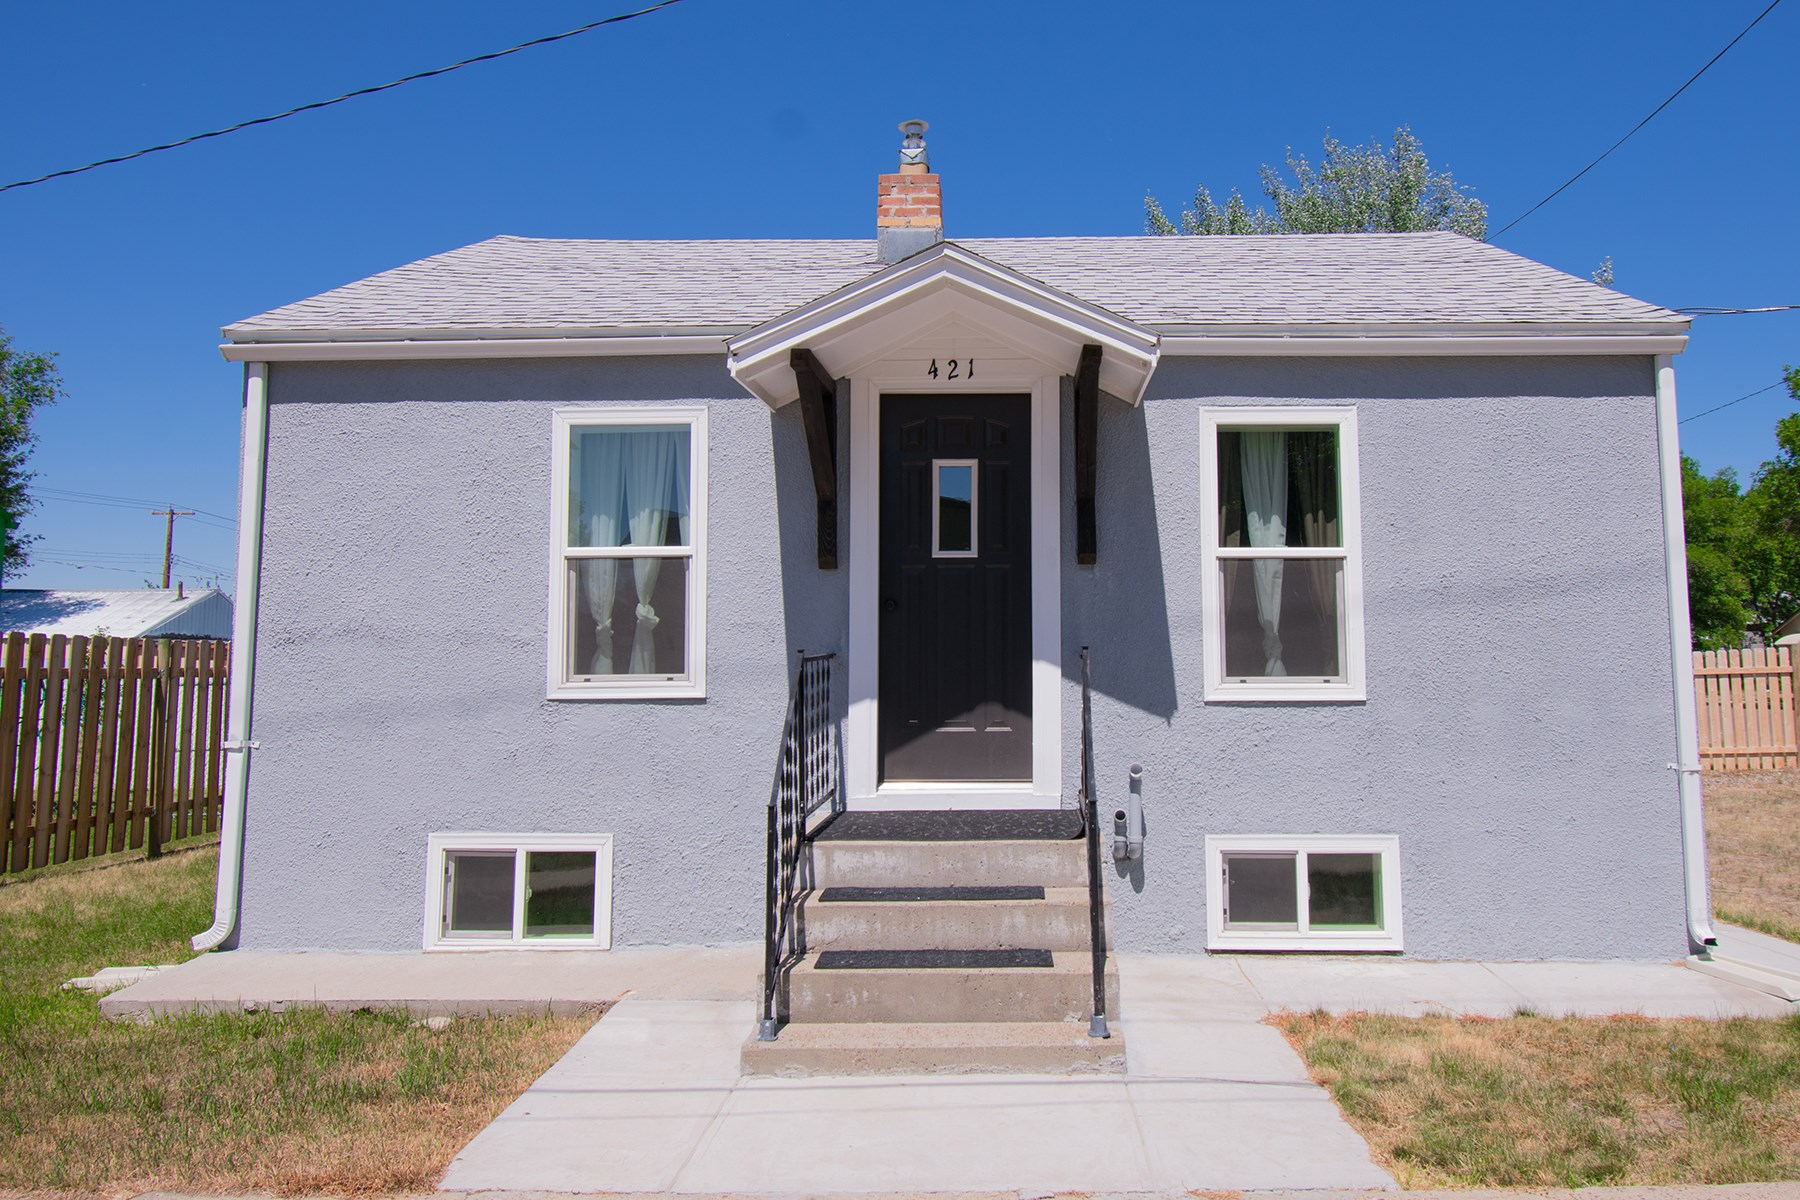 REMODELED MOVE-IN READY HOME FOR SALE, GLENDIVE MT